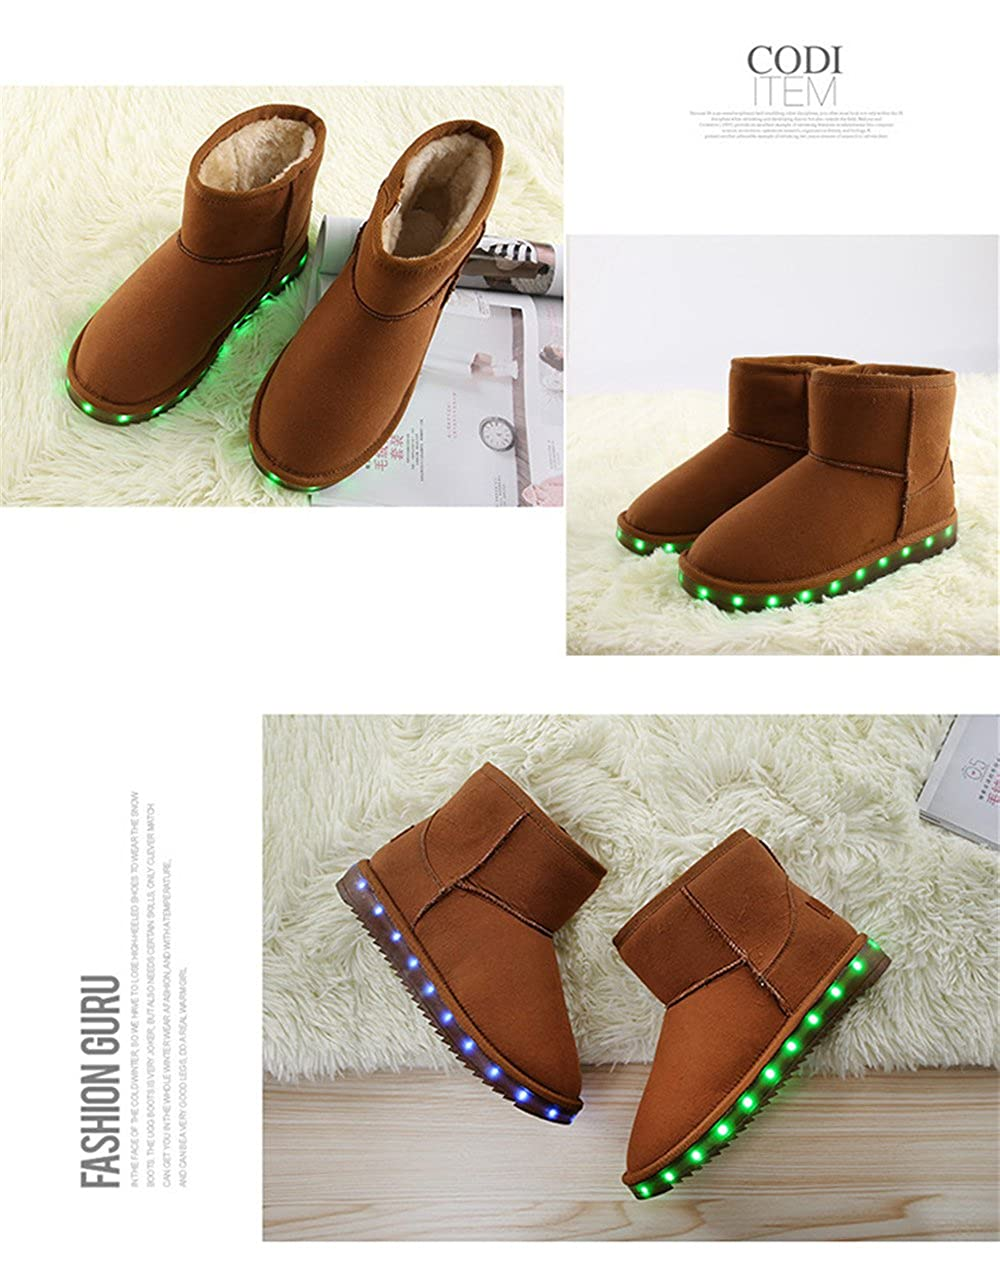 A2kmsmss5a Kids Boys Girls Led Light up Winter Shoes Luminous USB Charging Fur Lined Snow Boots Gifts